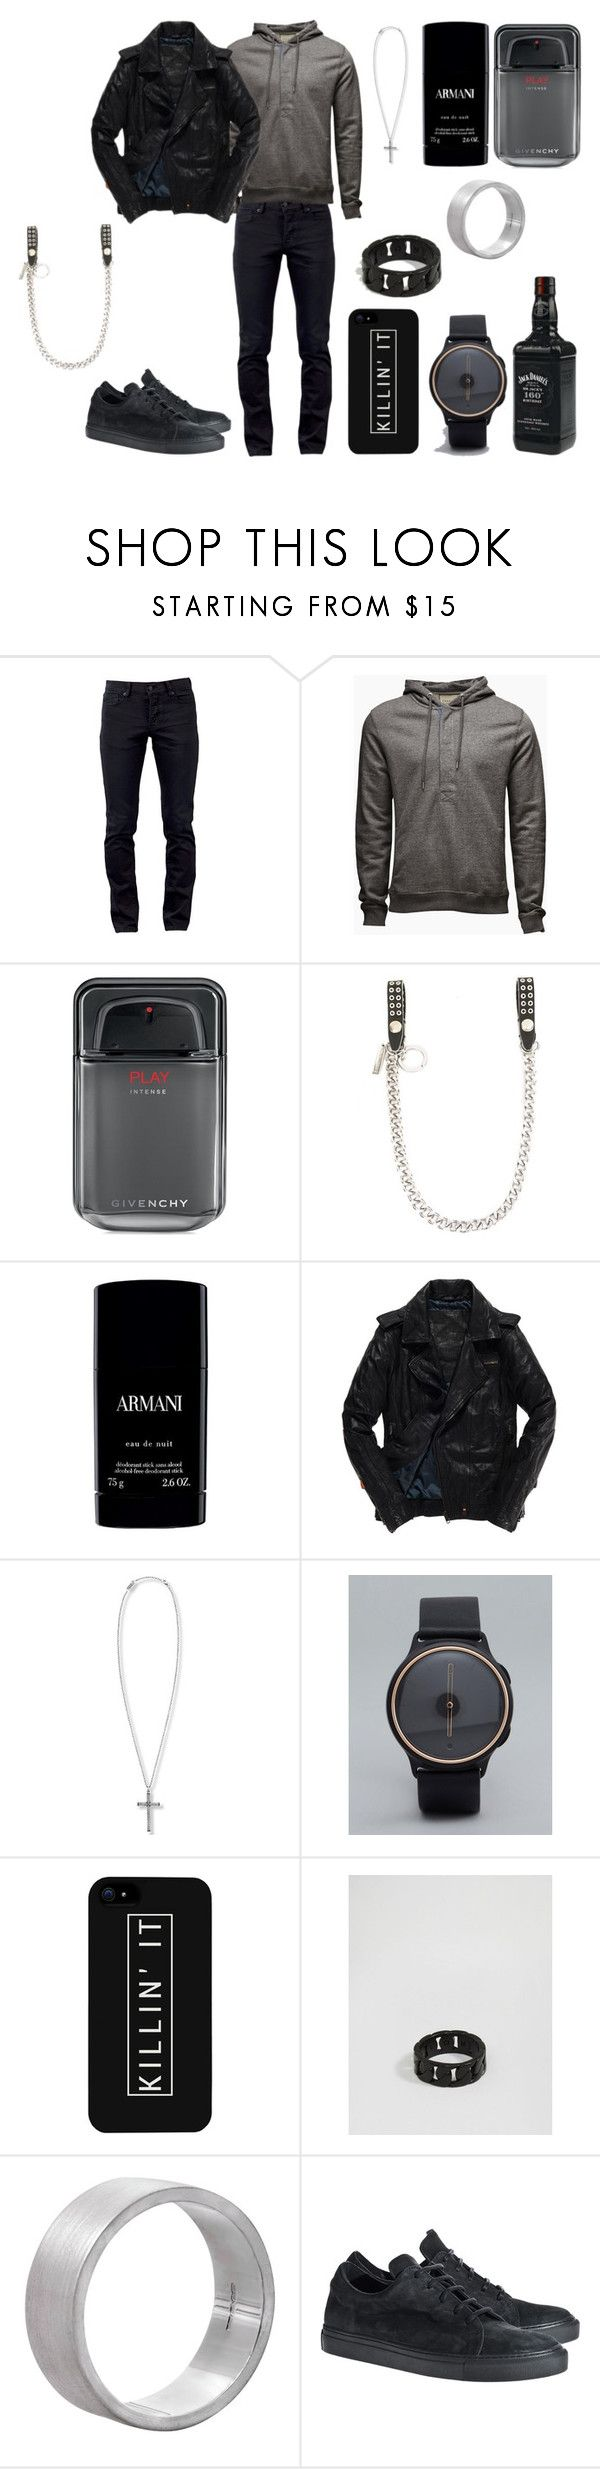 """Без названия #3876"" by southerncomfort ❤ liked on Polyvore featuring Kill City, Jack & Jones, Givenchy, Dsquared2, Armani Beauty, Superdry, Steve Madden, Misfit, LG and Icon Brand"